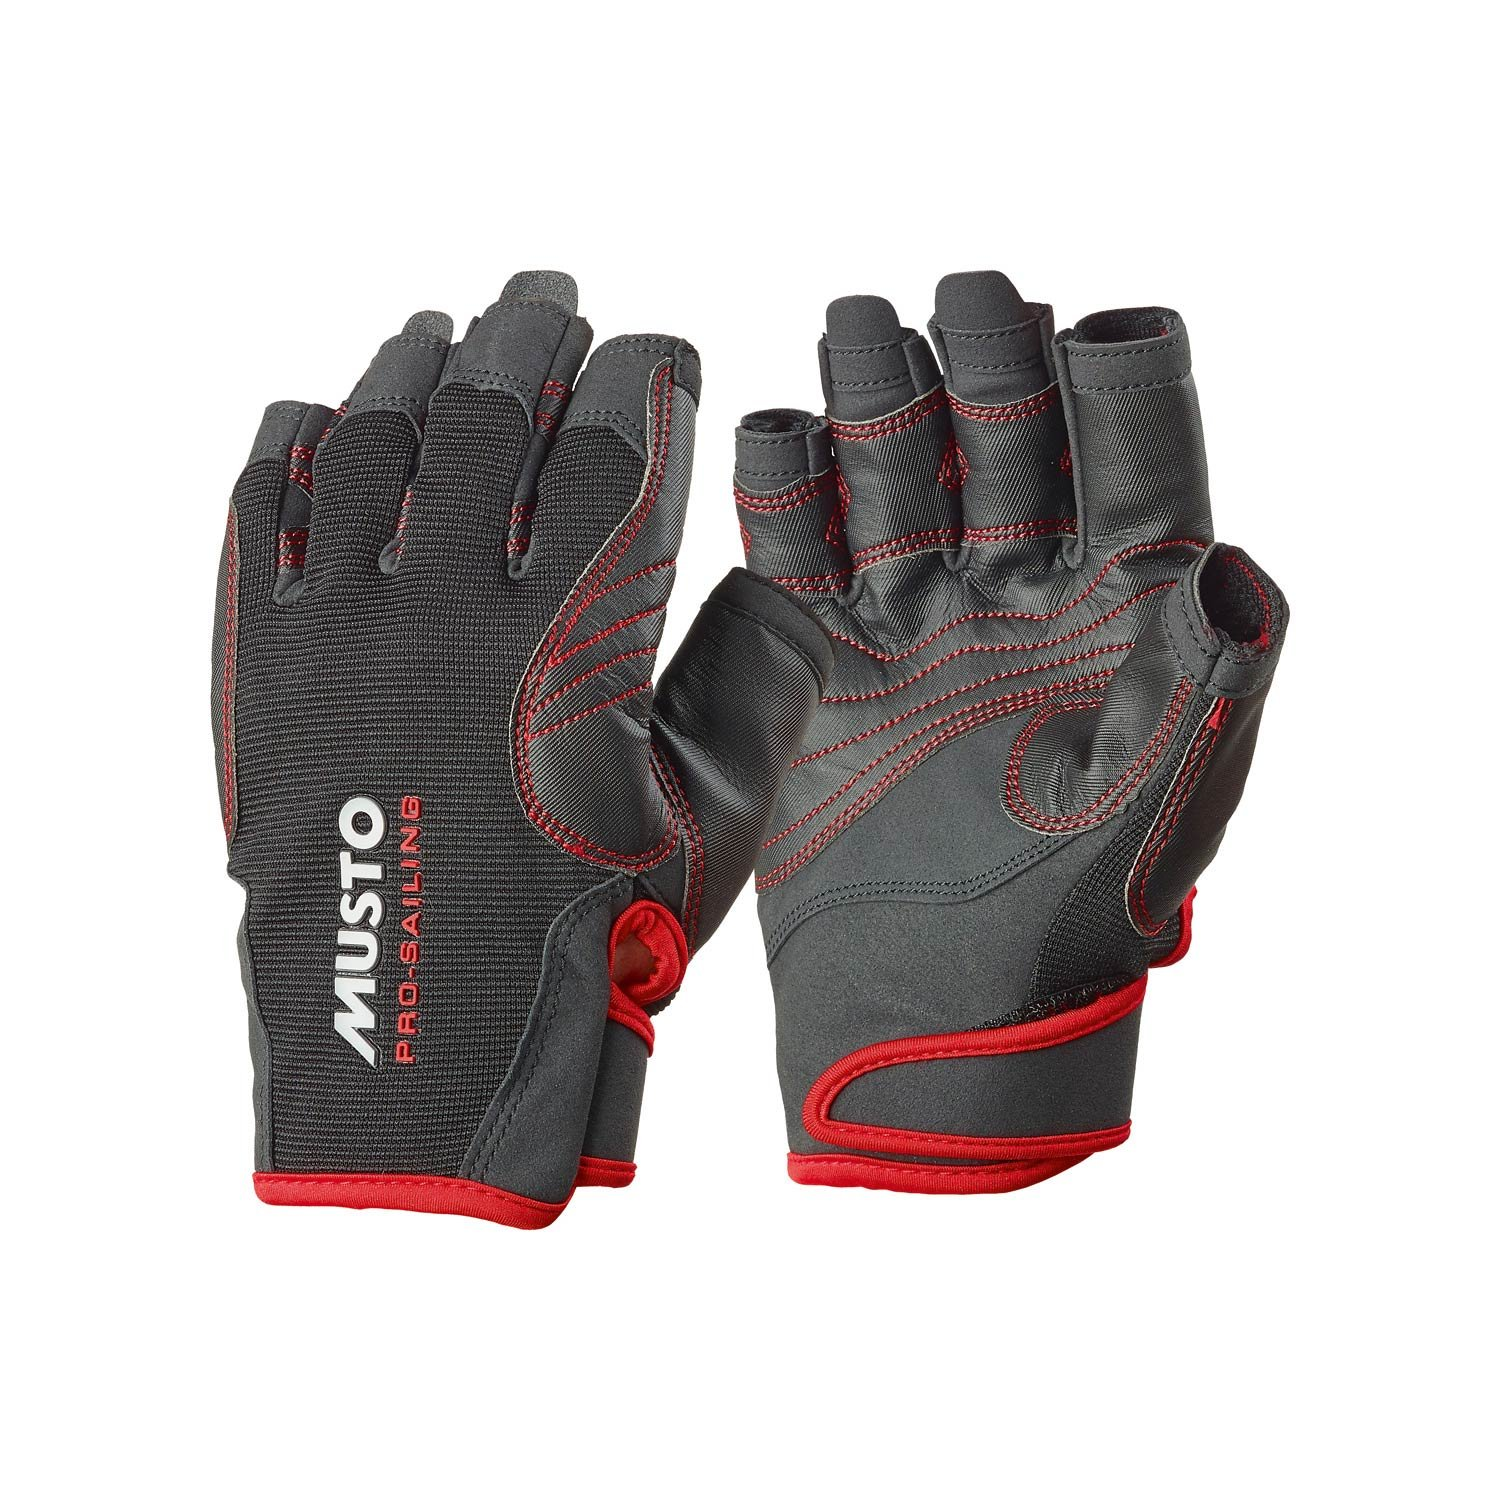 Finger frei Bootsport Musto Segelhandschuhe Performance Gloves